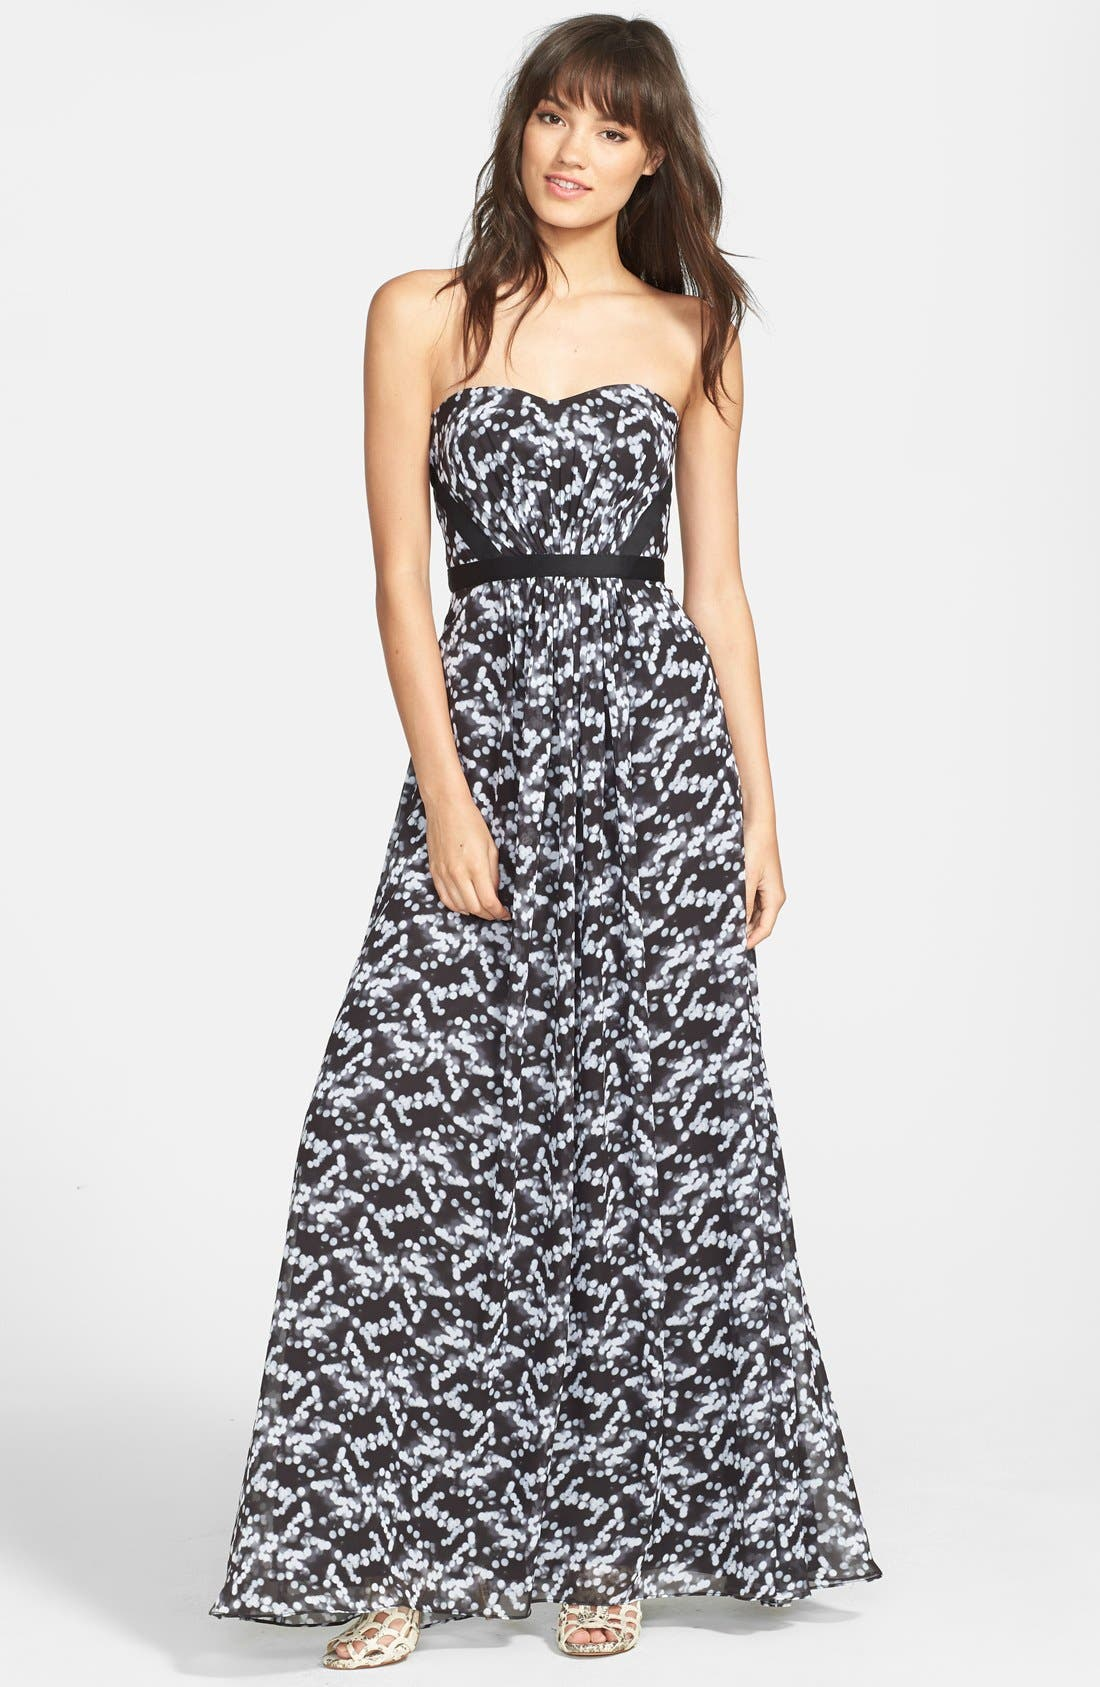 Alternate Image 1 Selected - Hailey by Adrianna Papell Print Strapless Chiffon Gown